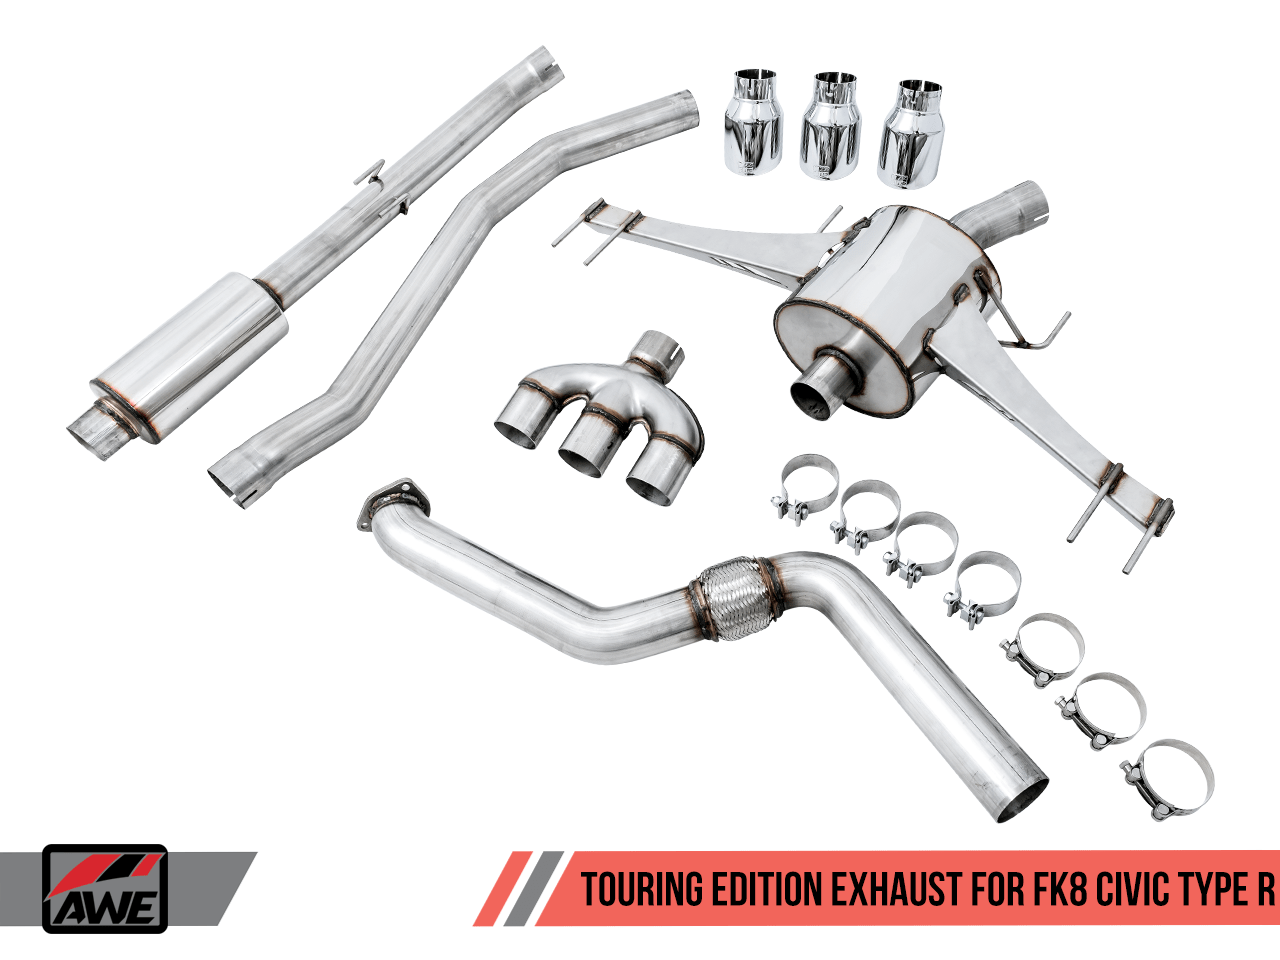 awe touring edition exhaust for fk8 civic type r includes front pipe